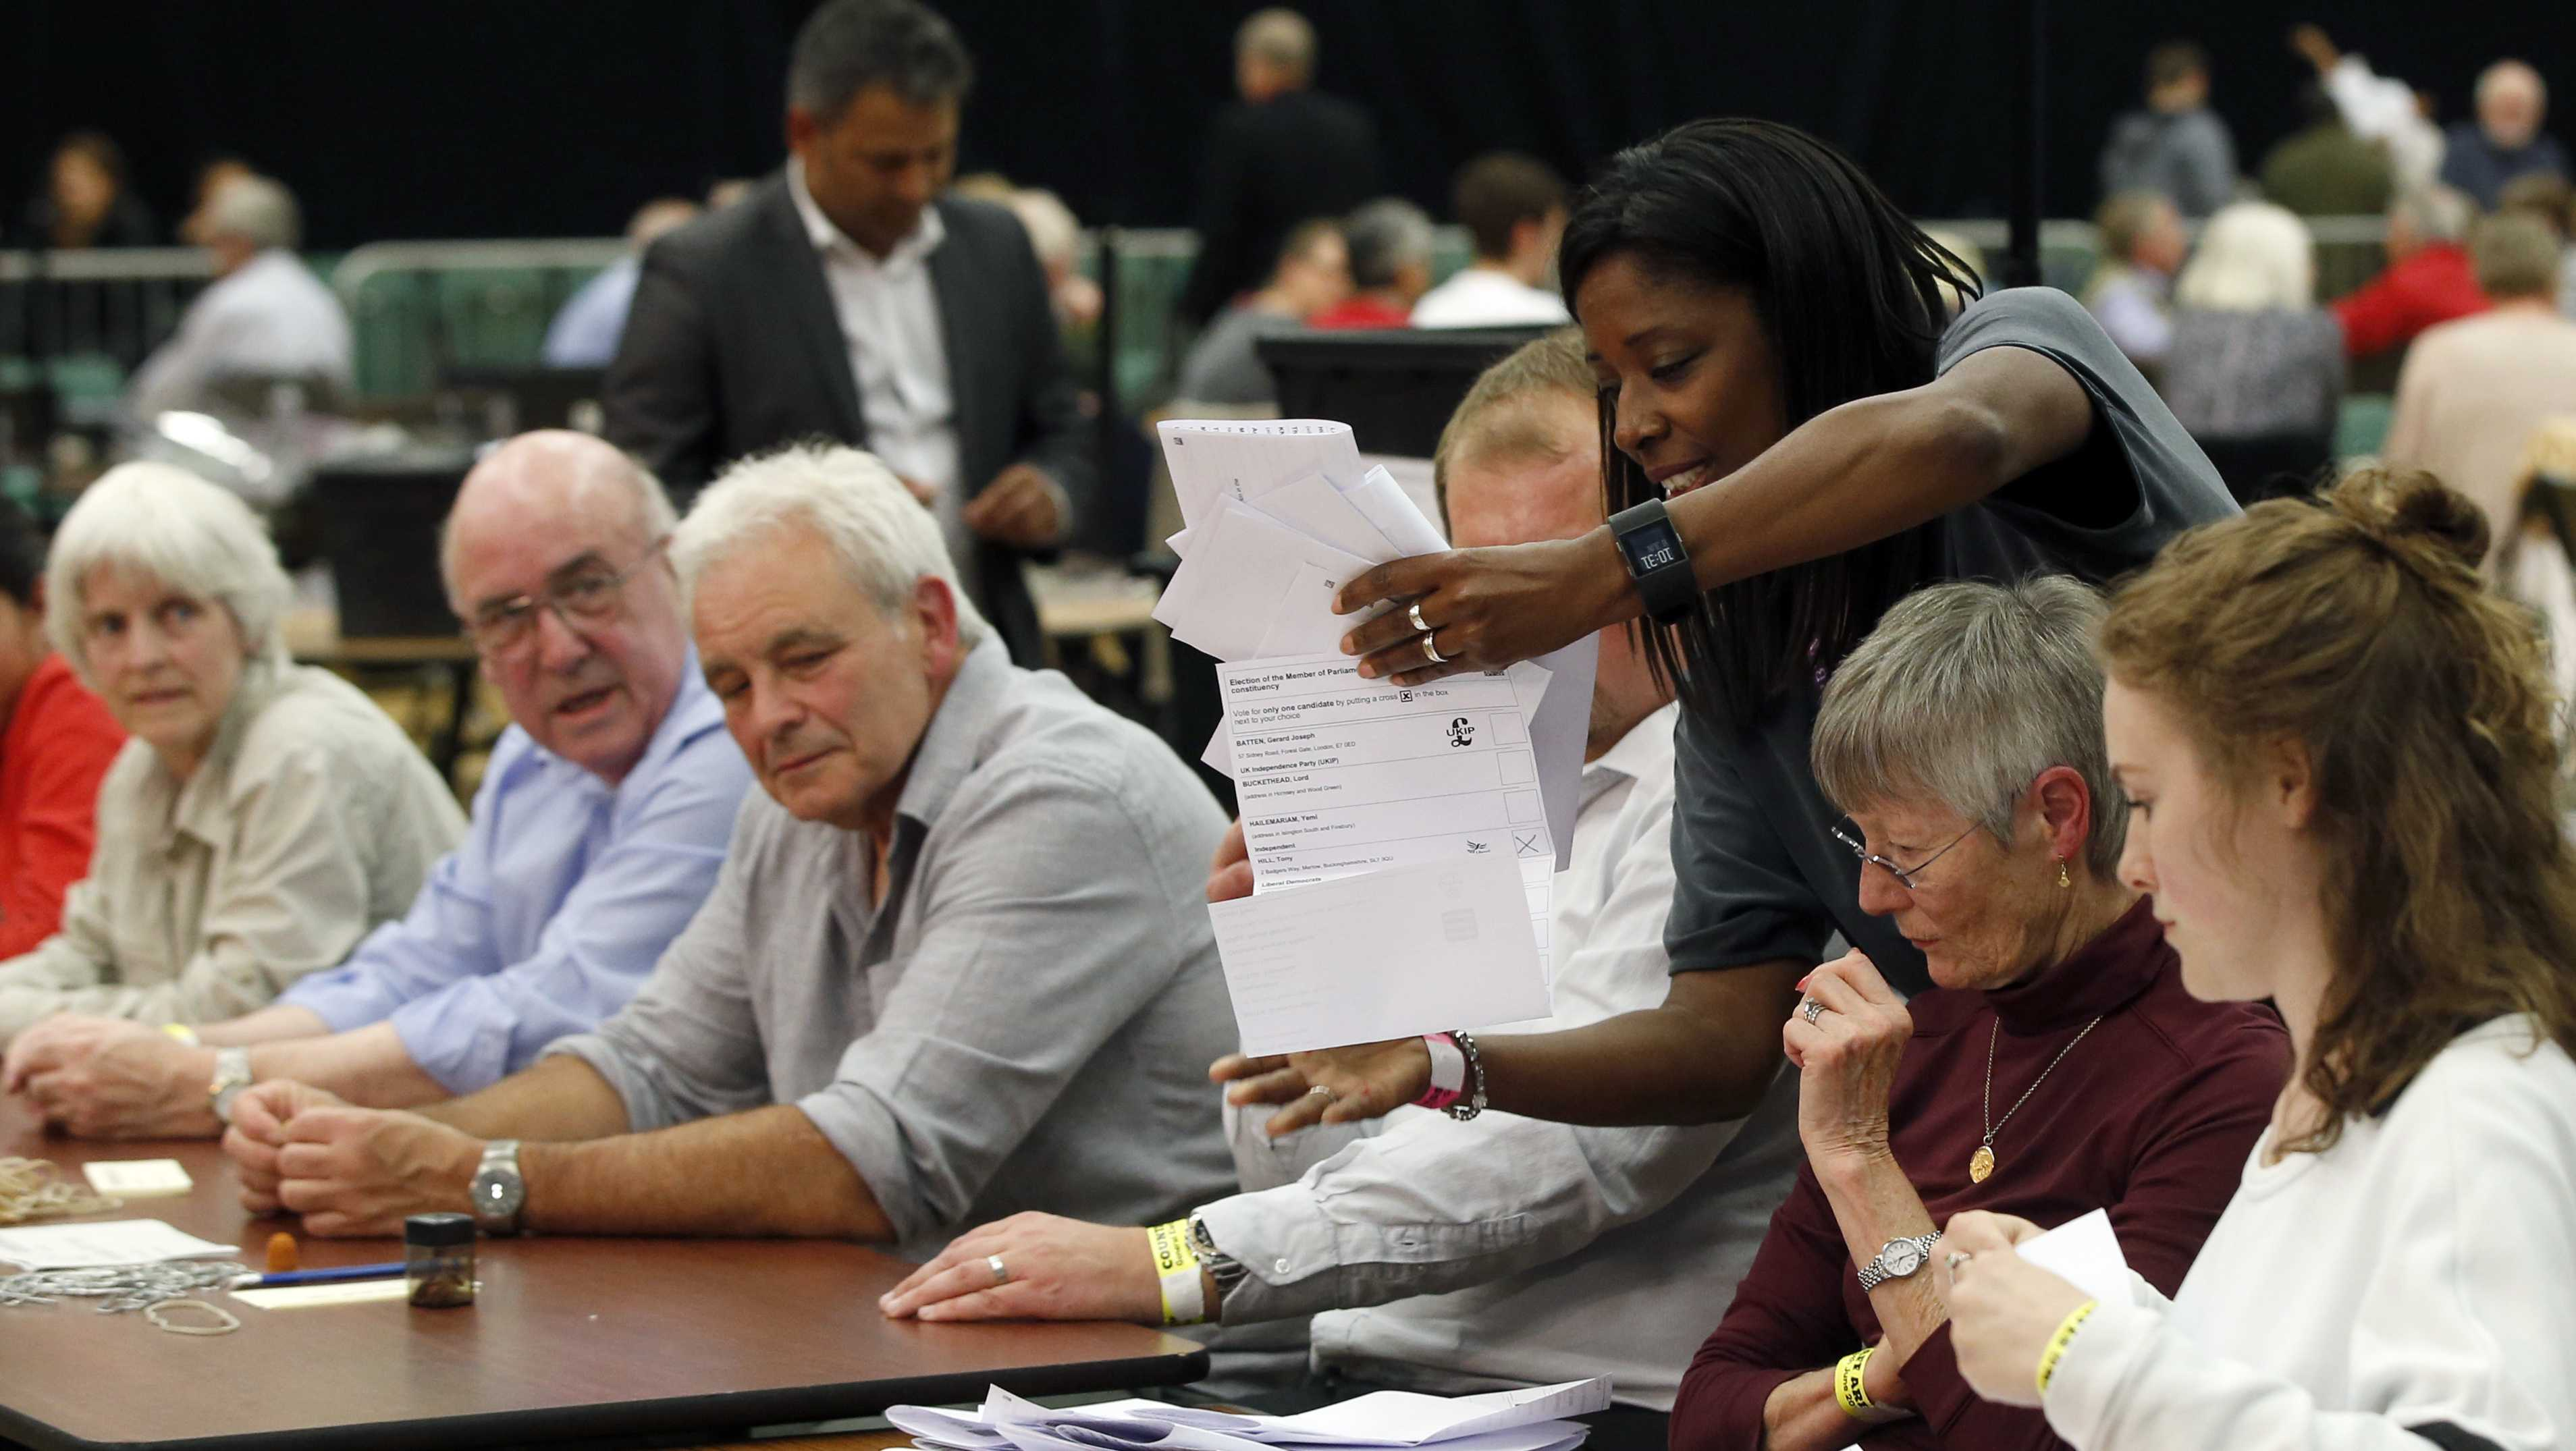 Members of the election staff prepare to count ballots, in the Magnet Leisure Centre Maidenhead, the constituency of Prime Minister Theresa May, in Maidenhead, England, Thursday, June 8, 2017. An exit poll has projected that Prime Minister Theresa May's Conservative Party will win the biggest share of seats in Britain's Thursday election but could fall short of a majority in Parliament.